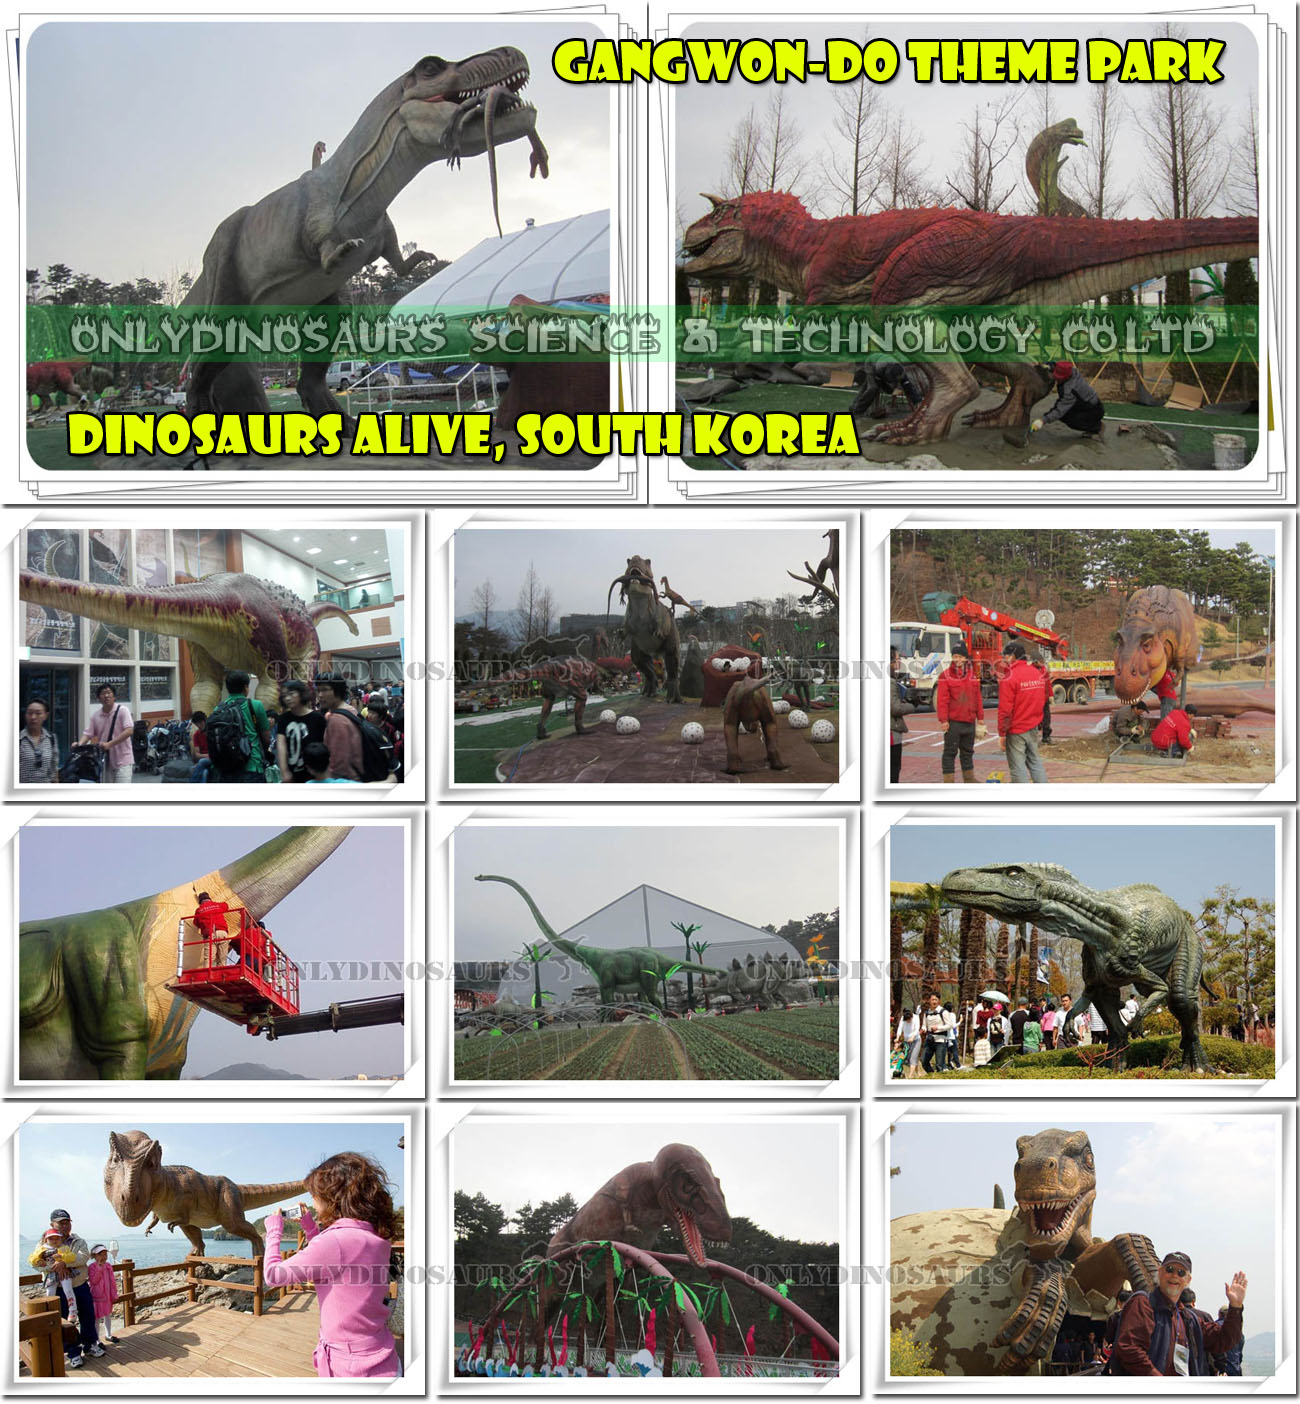 Dinosaurs Alive South Korea